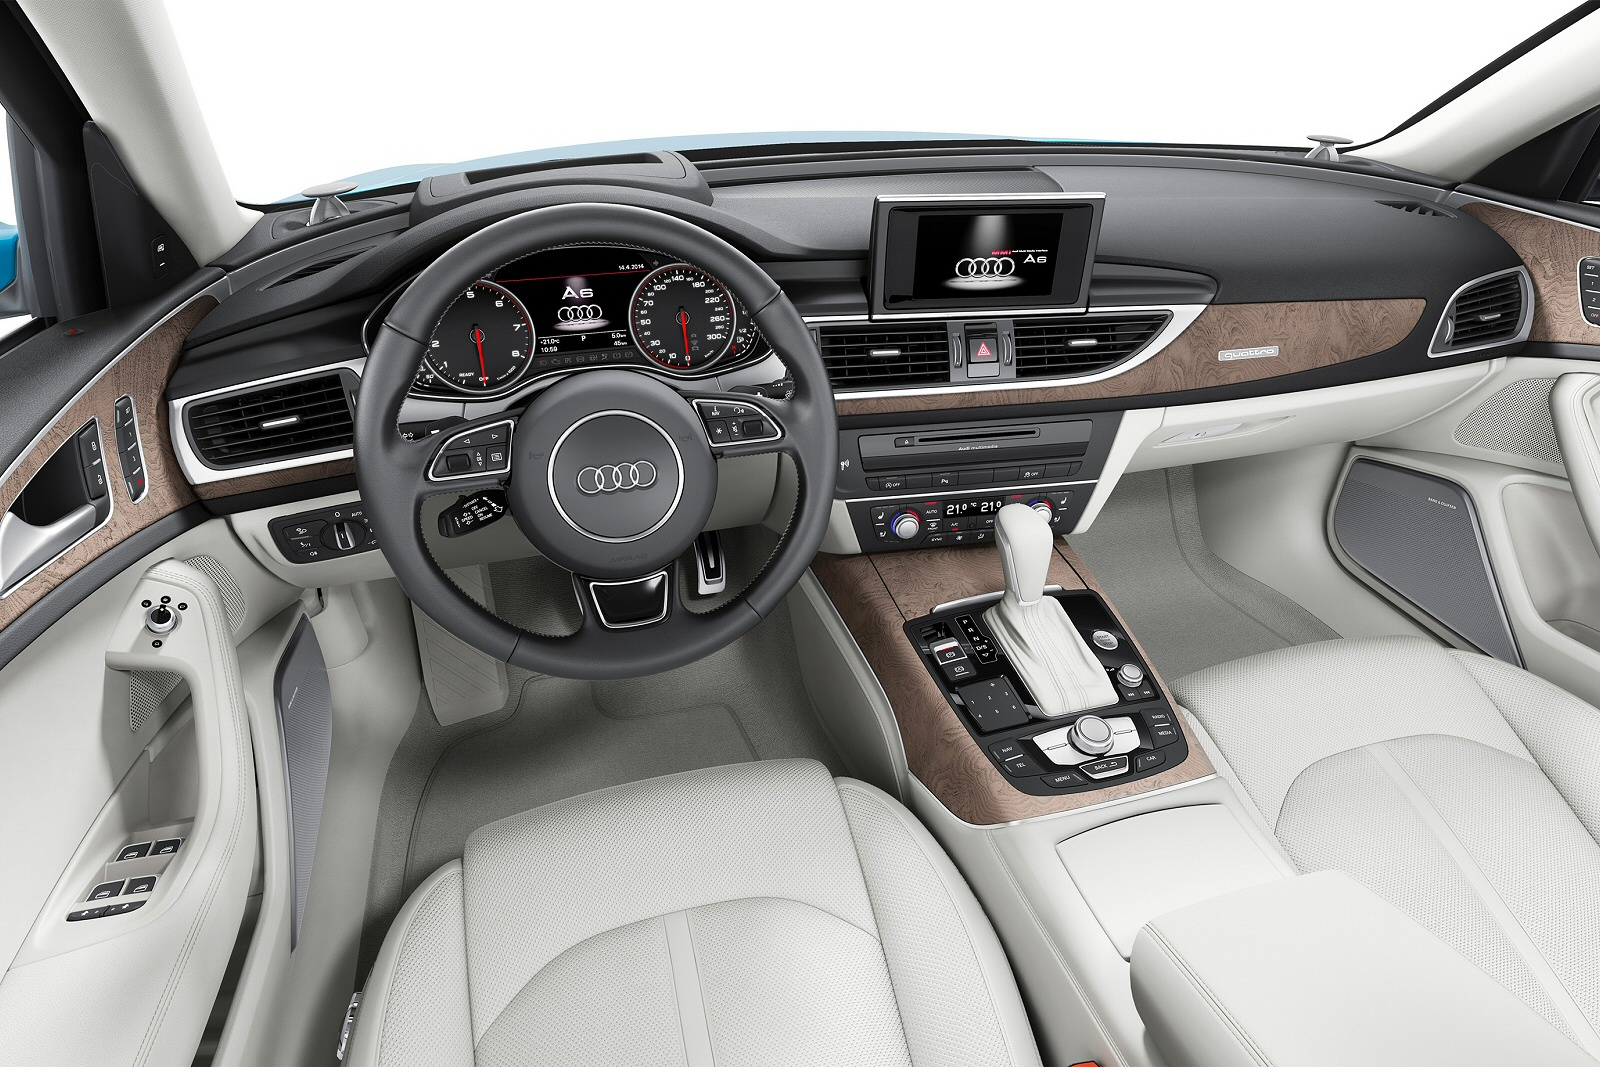 new audi a6 2 0 tdi ultra se executive 4dr s tronic diesel saloon for sale south hereford garages. Black Bedroom Furniture Sets. Home Design Ideas